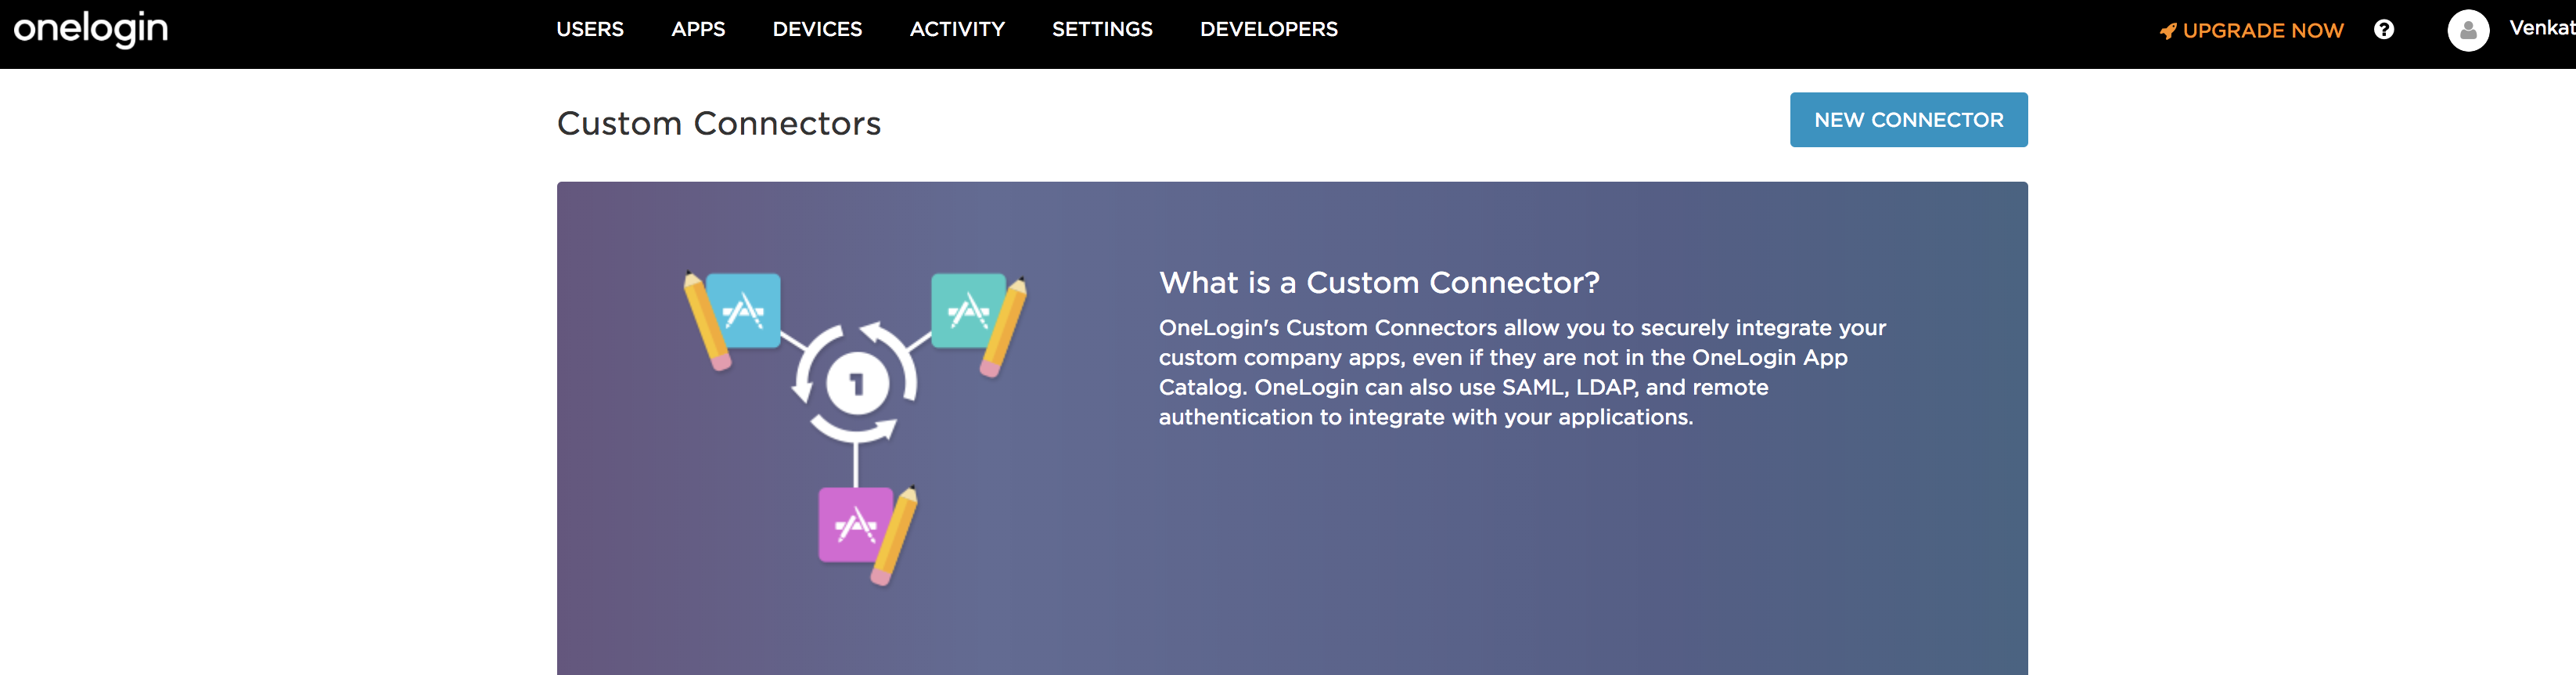 Now You Can Setup Centrify, OneLogin, Ping and Other Identity Providers with Cloudflare Access